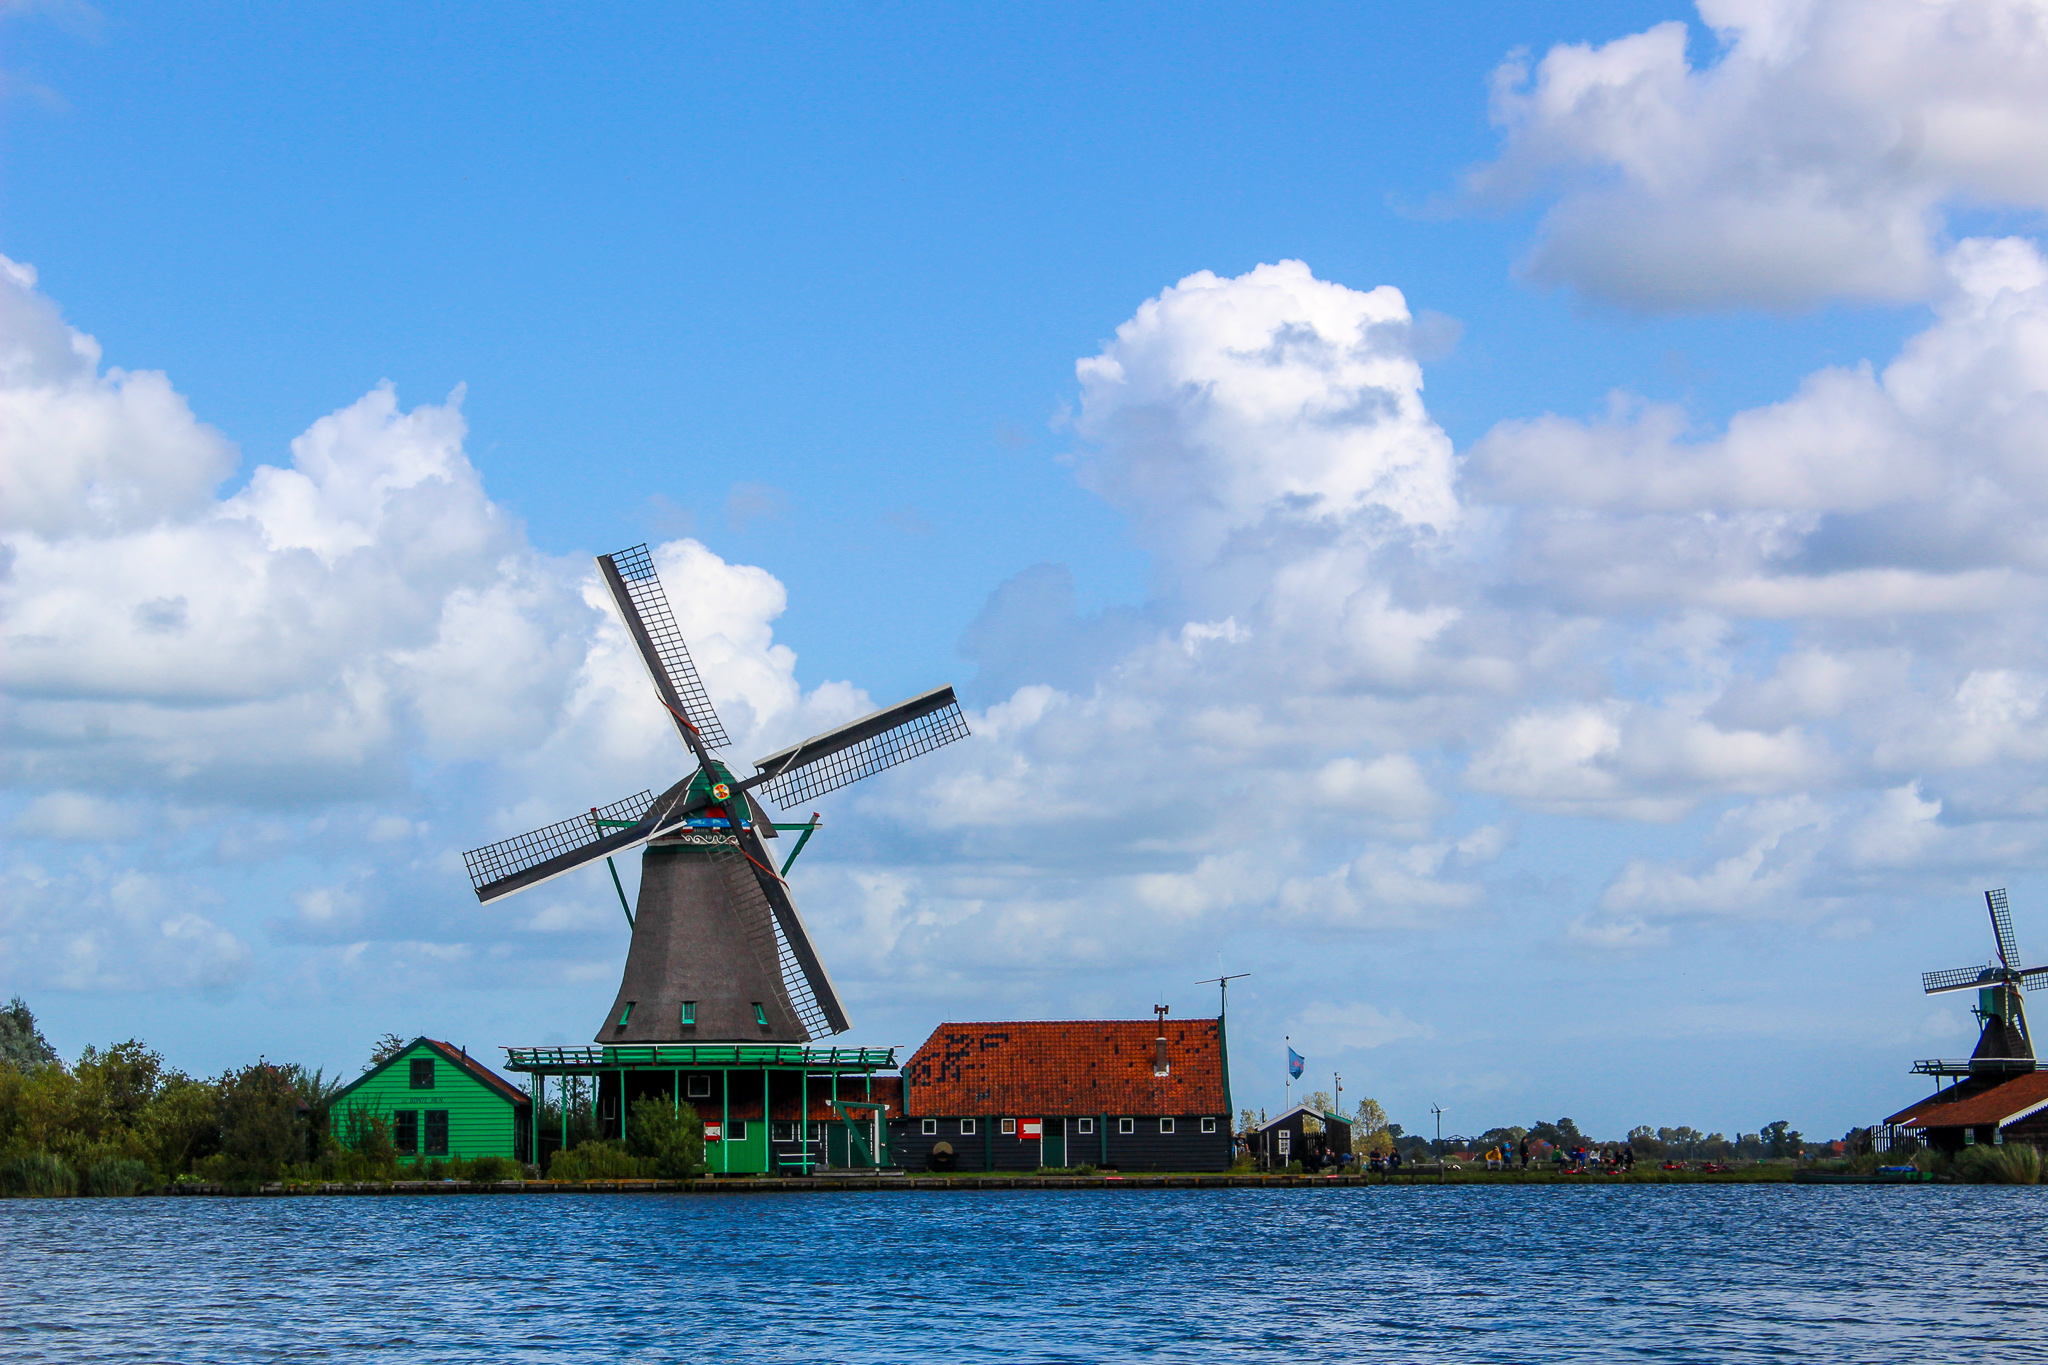 day trips from amsterdam mean seeing windmills, lots of windmills